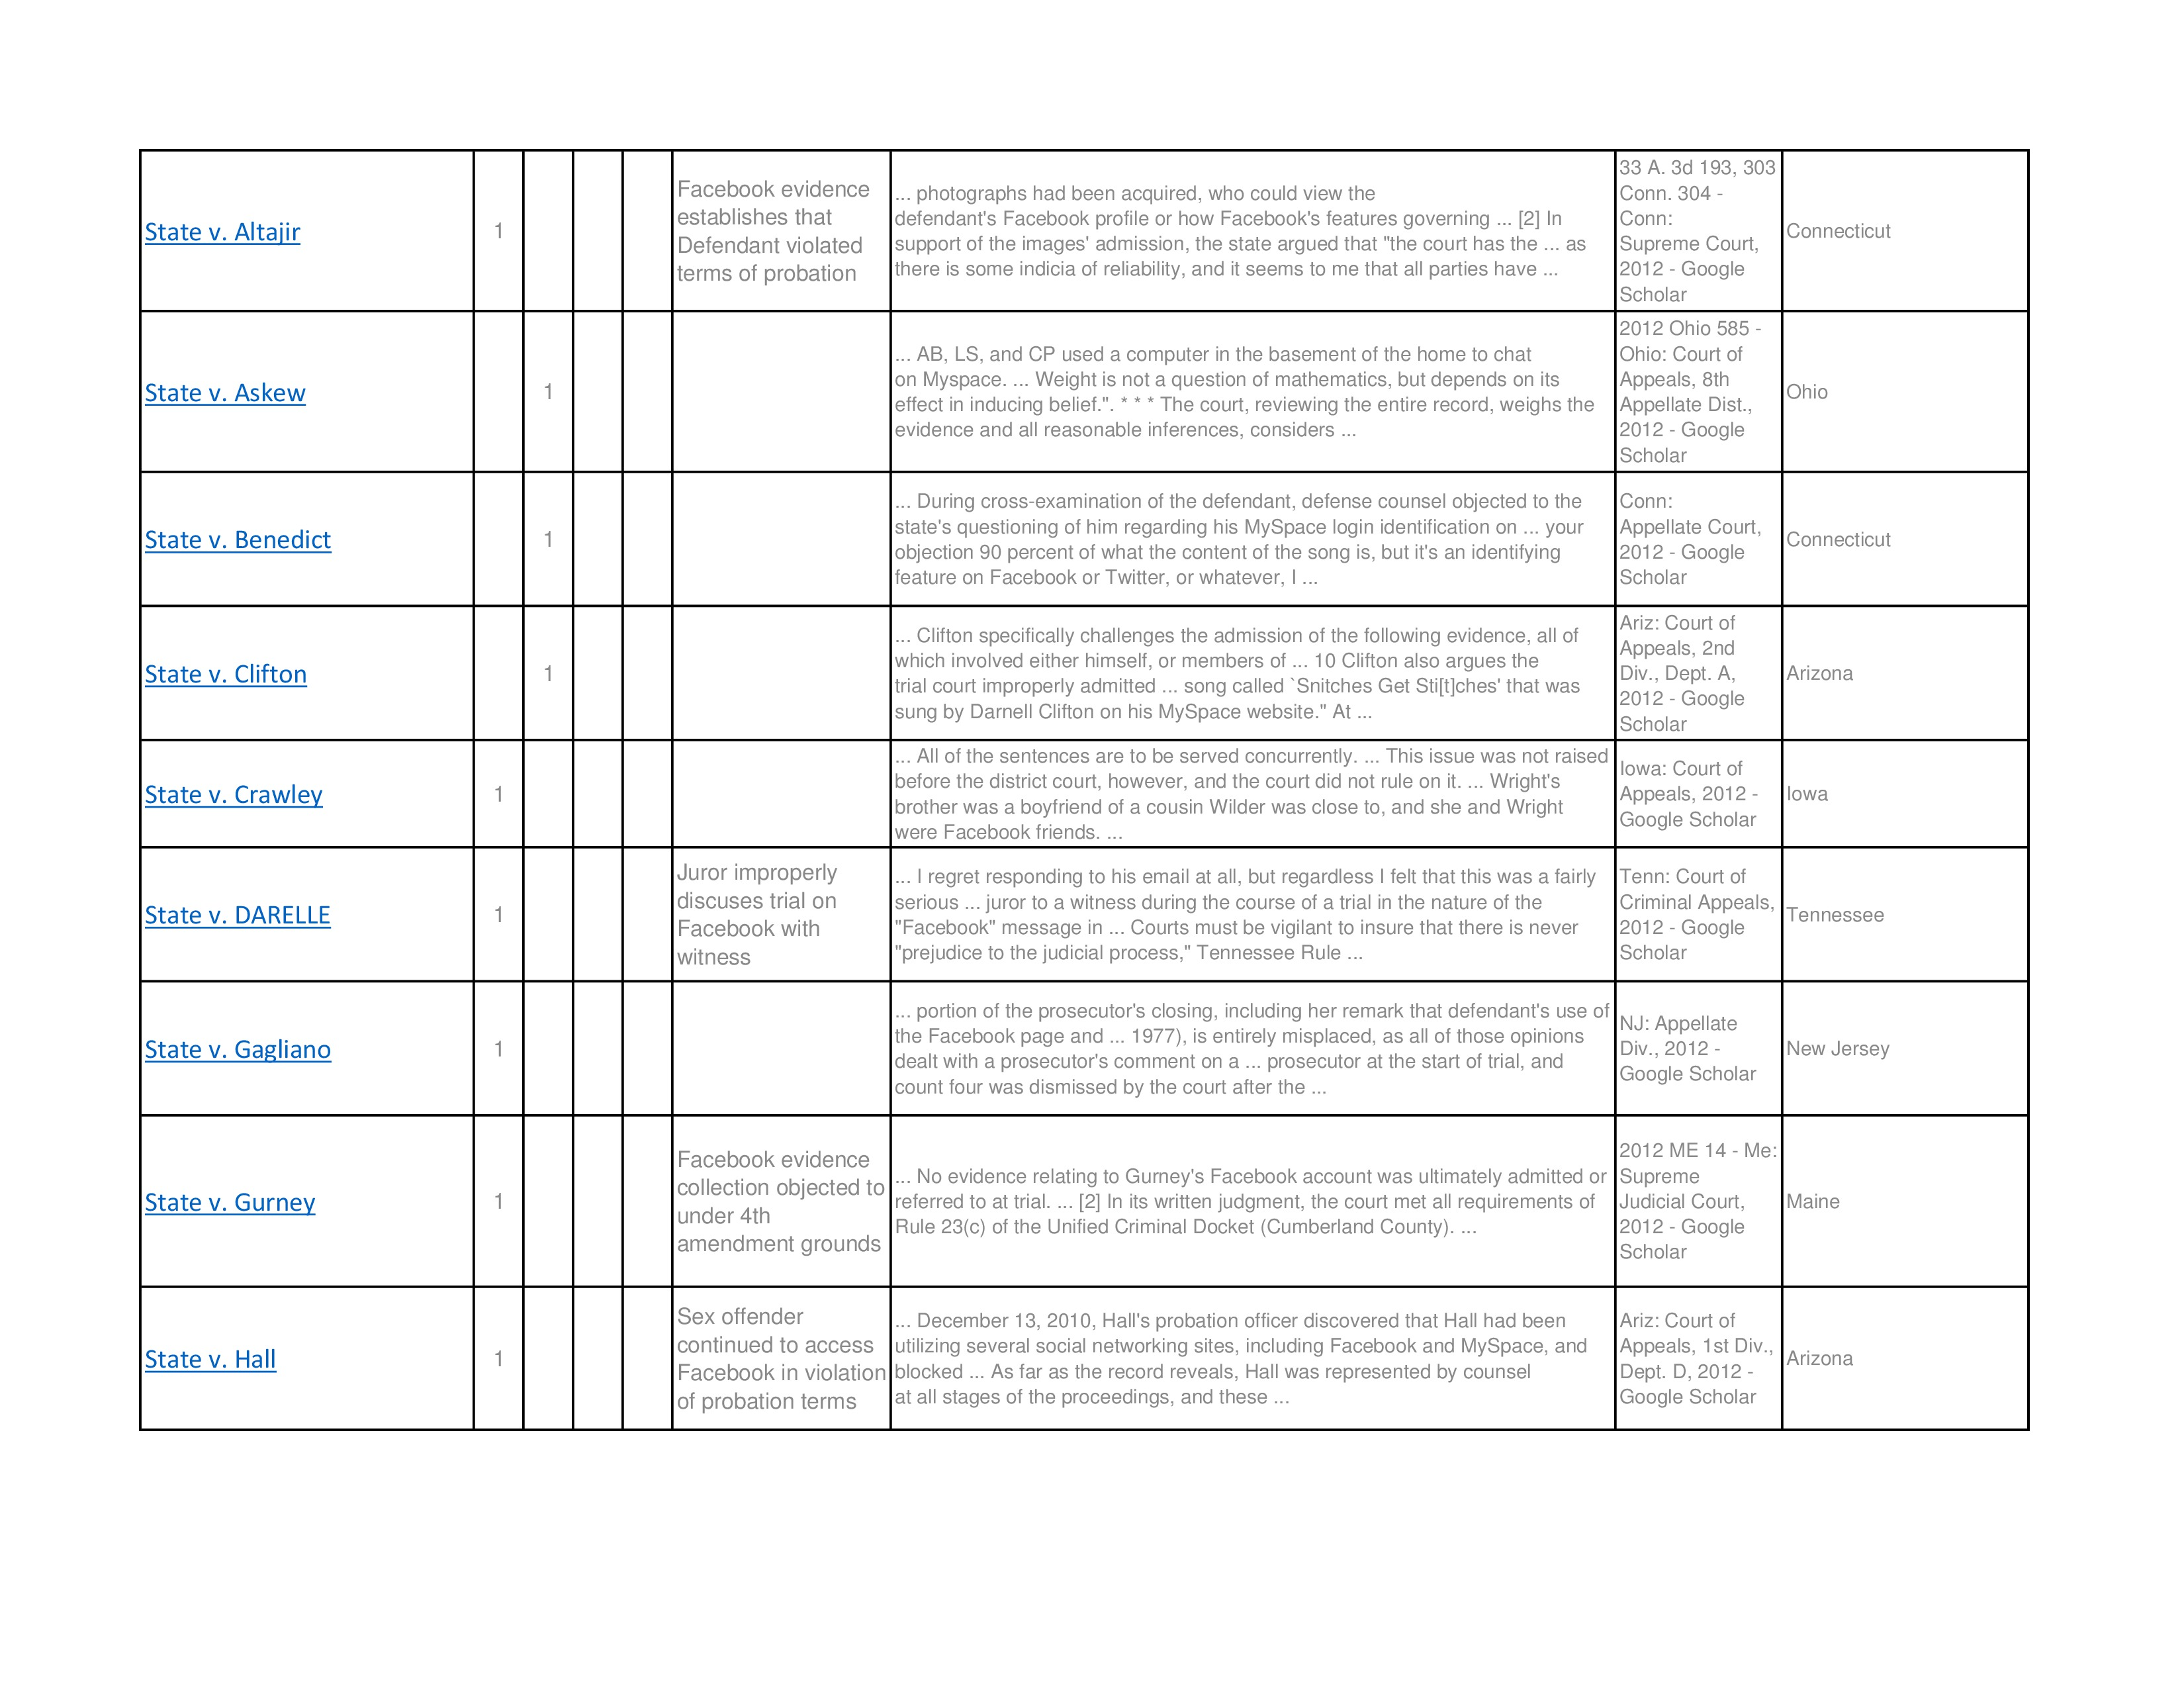 Social Media Cases Chart Bermudez Victor E Discovery Of Social